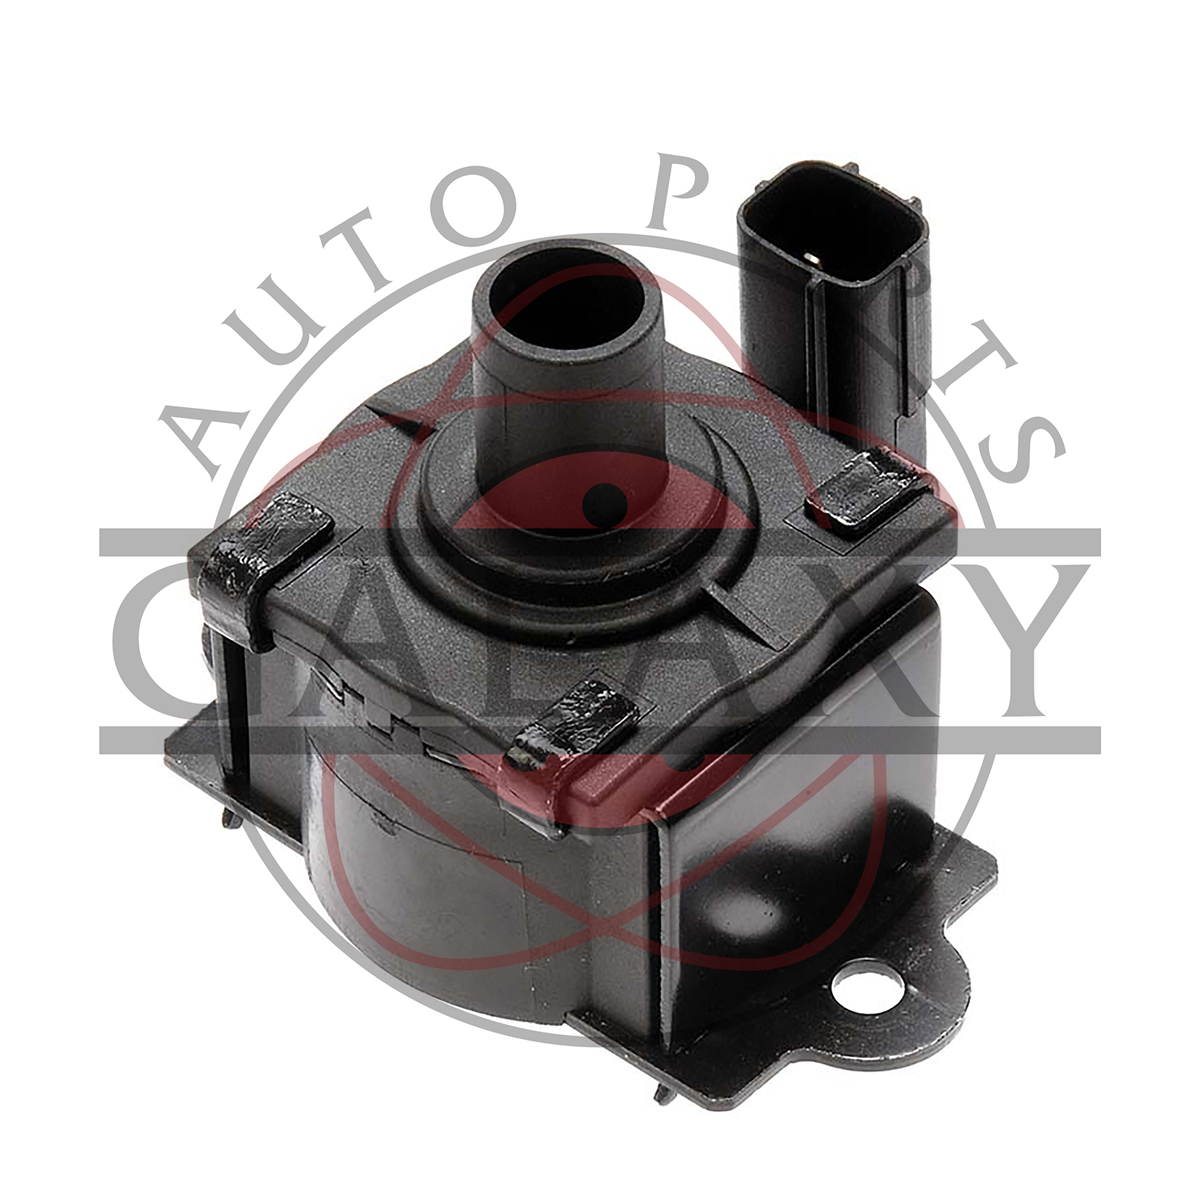 Evap Charcoal Canister Two Way Valve Fits Acura RL 04/RSX